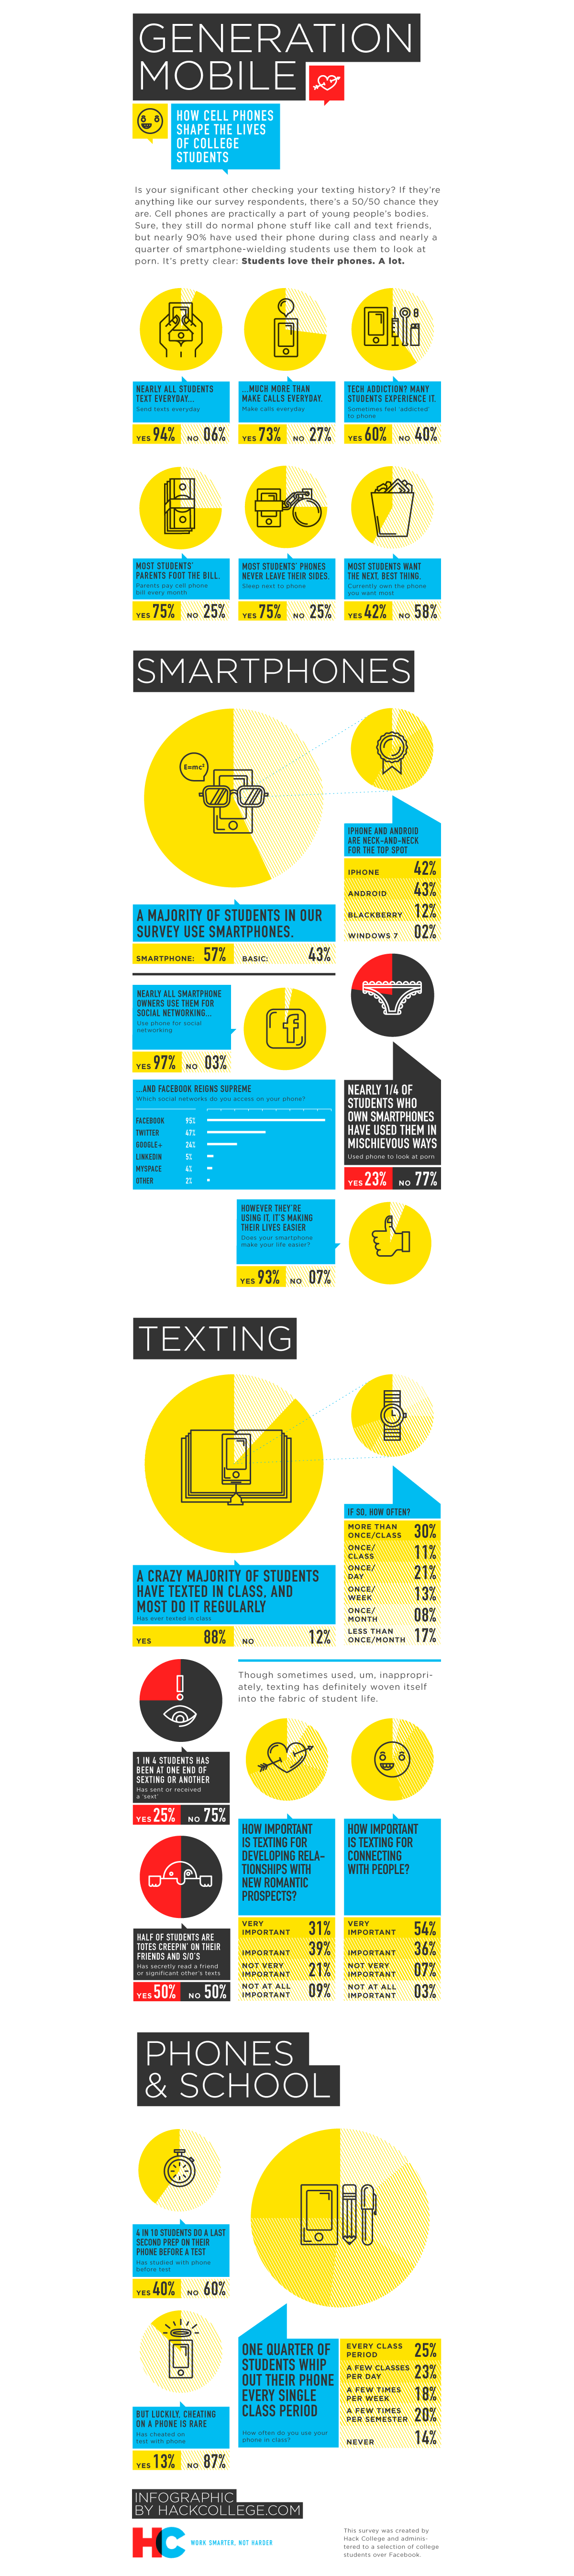 Survey Results: How Often Do Students Use Their Phone